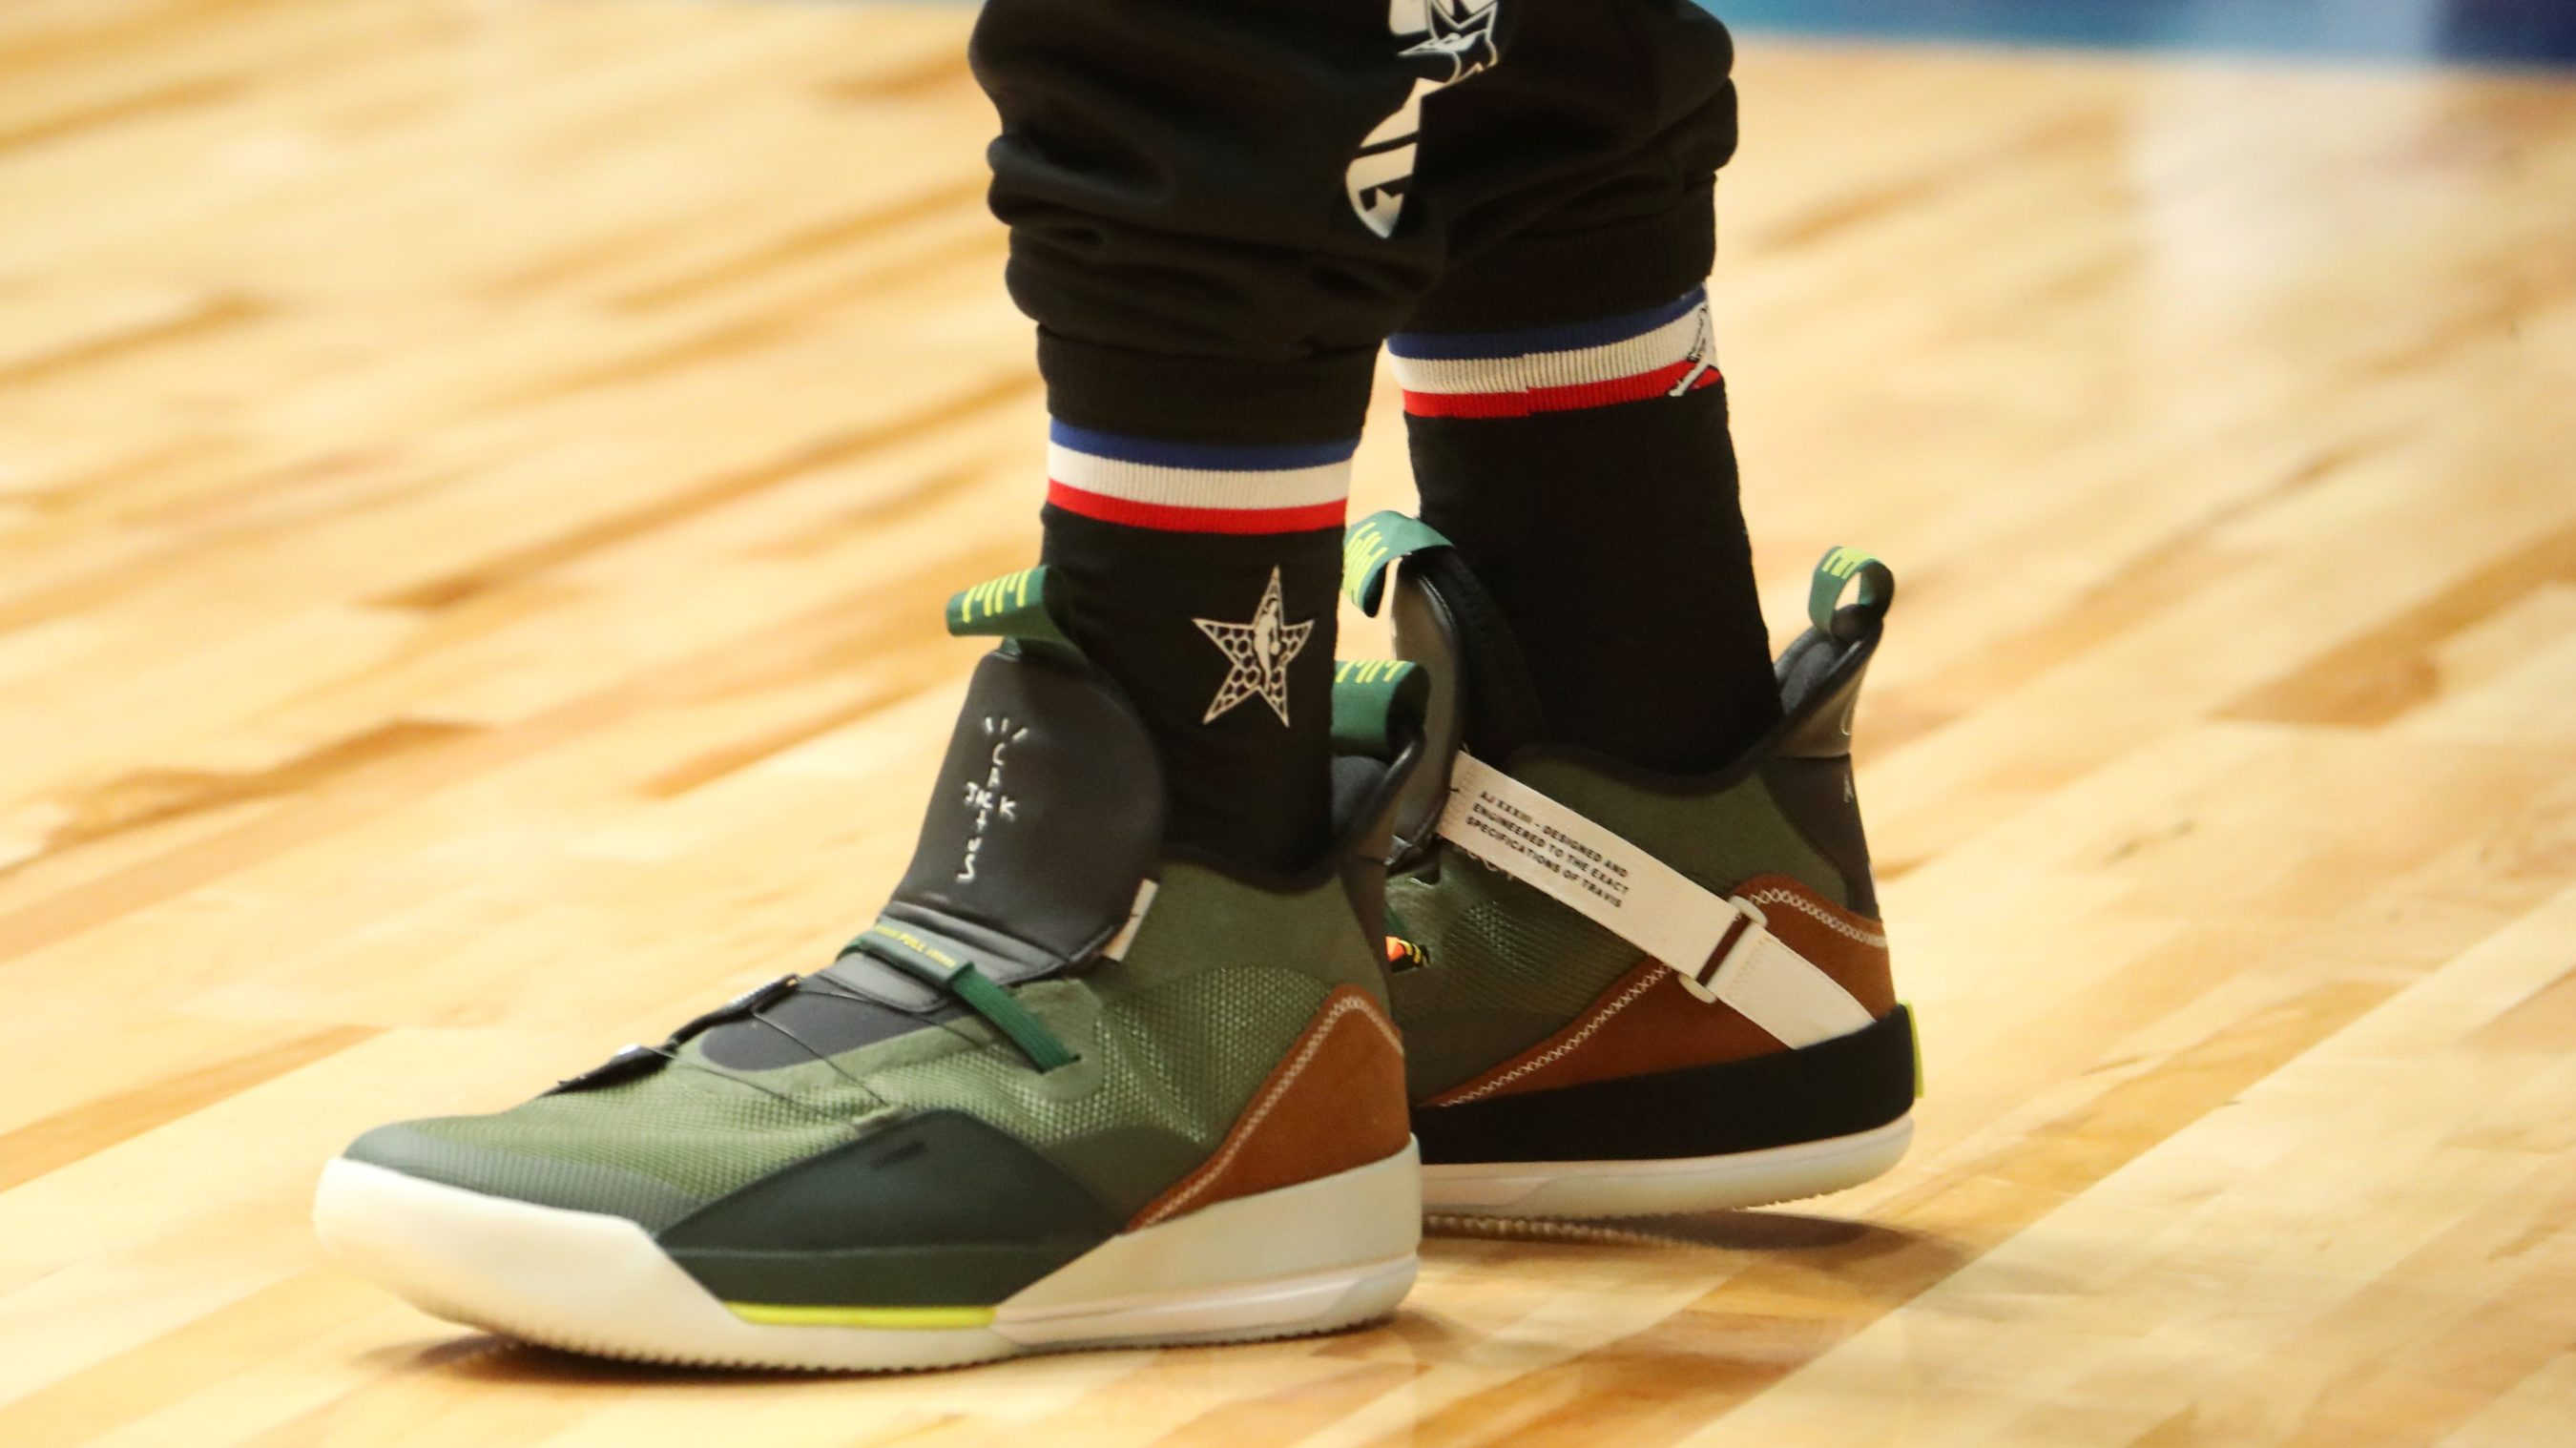 fa90d379a49e The 23 hottest sneaker sightings of 2019 NBA All-Star Weekend